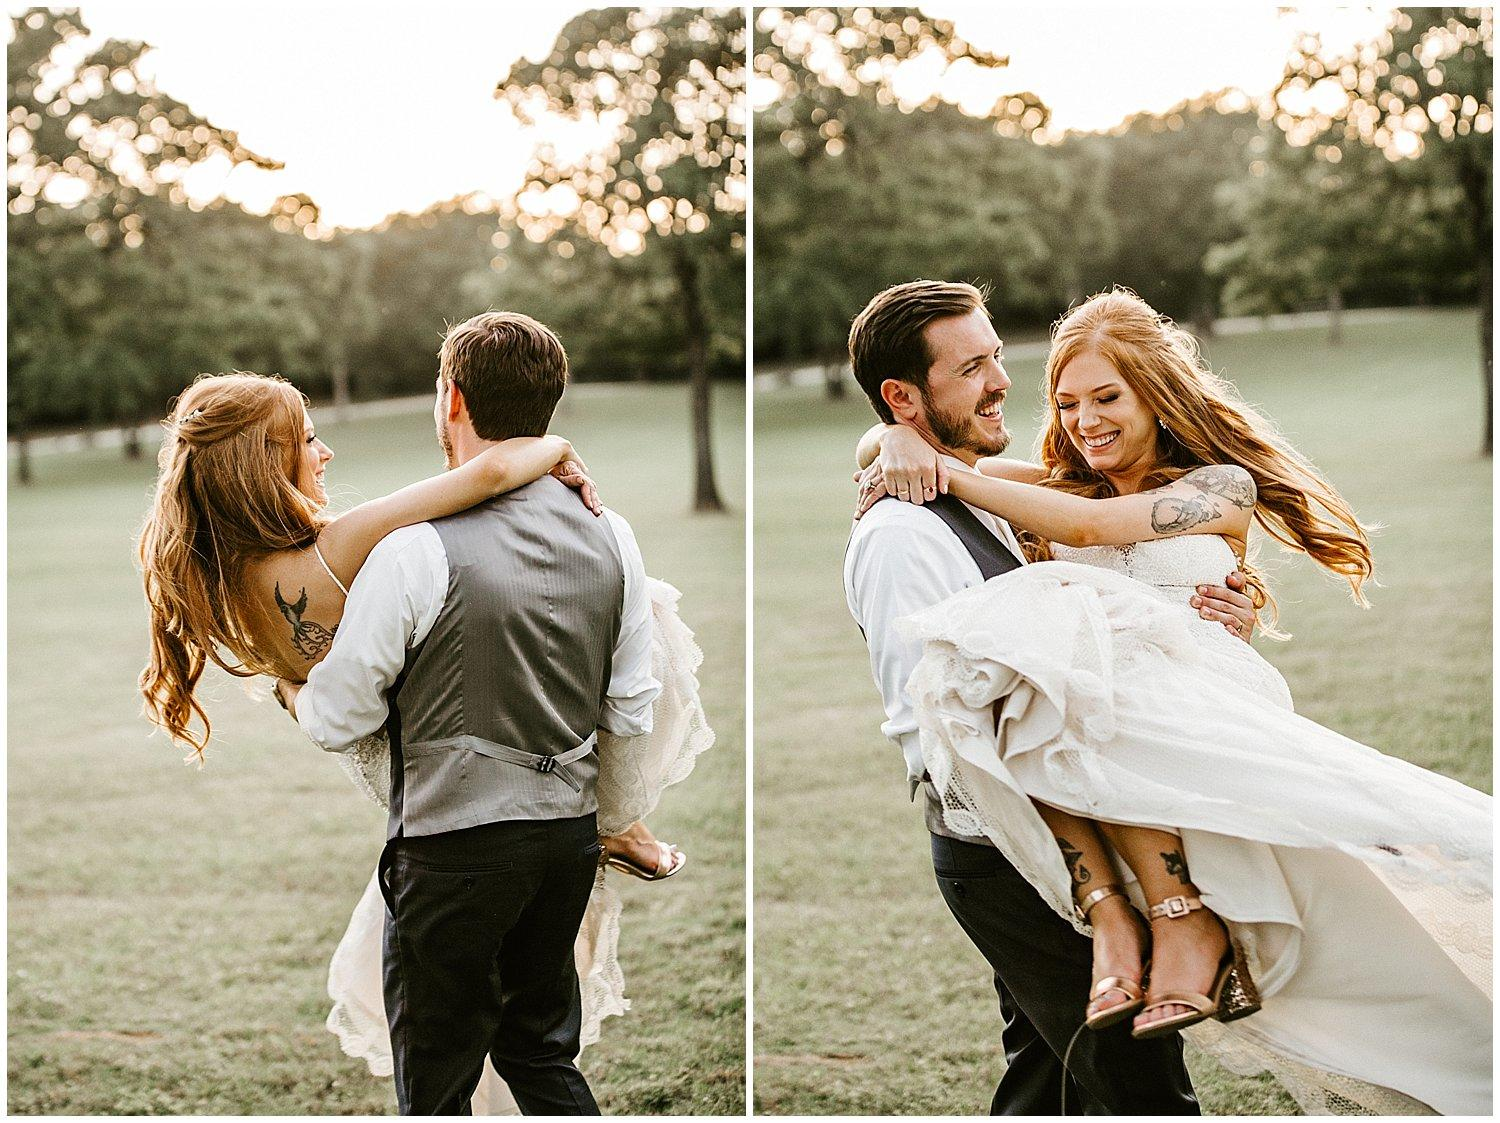 grooms swinging his bride around in his arms on green grass at sunset